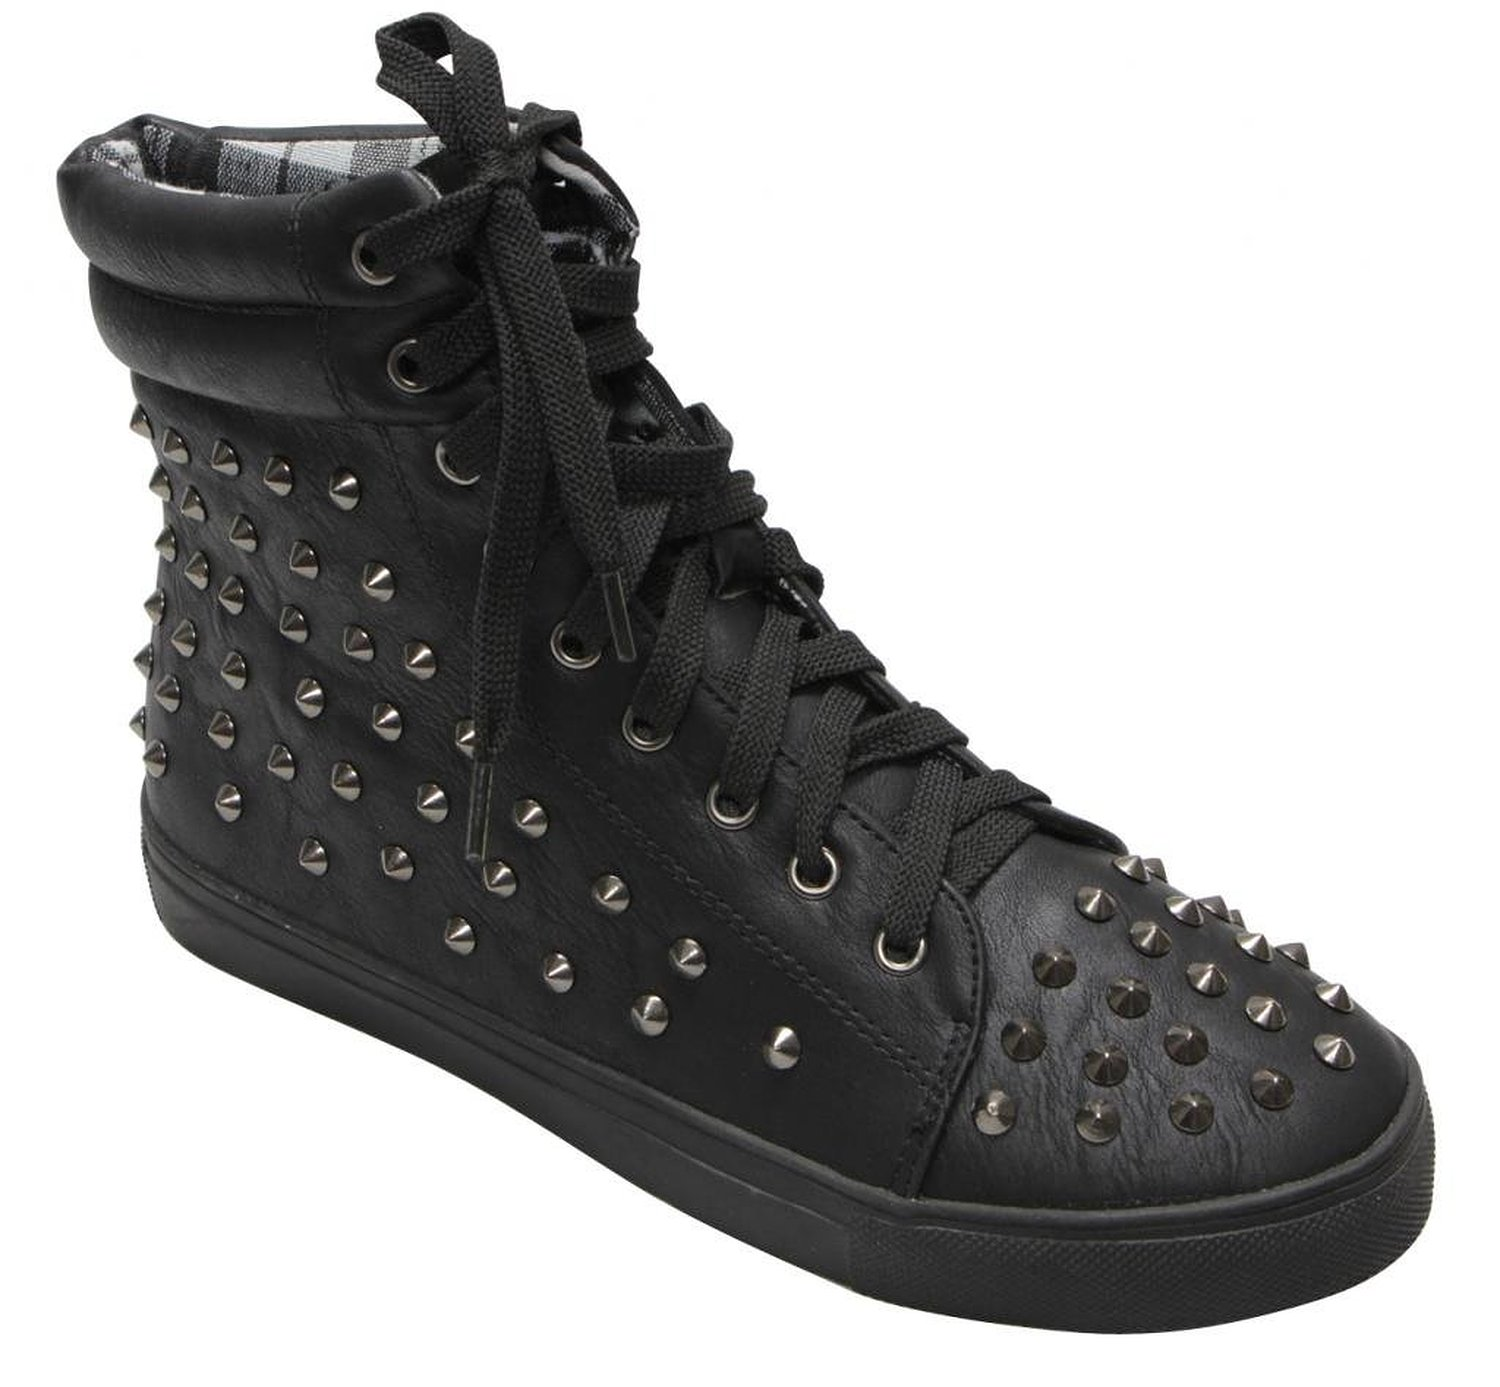 Amazon.com: cape robbin olivia women's metal spike stud high top lace up sneaker punk booies: shoes